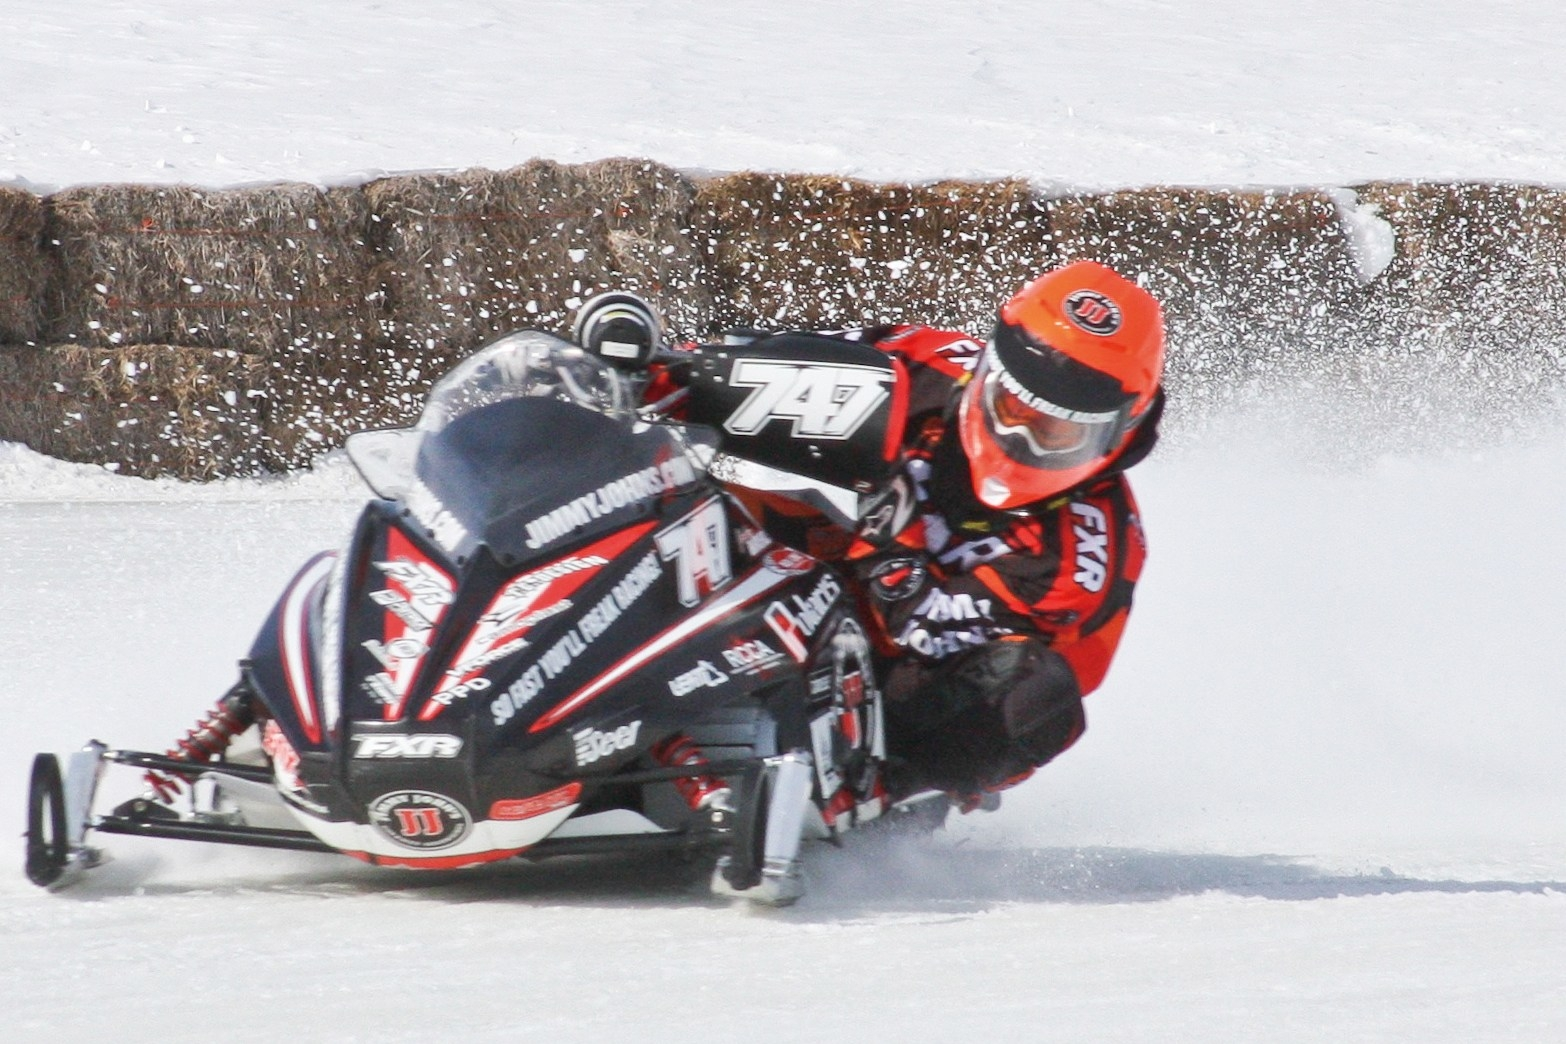 The World's Fastest come to BEAUSEJOUR this weekend!